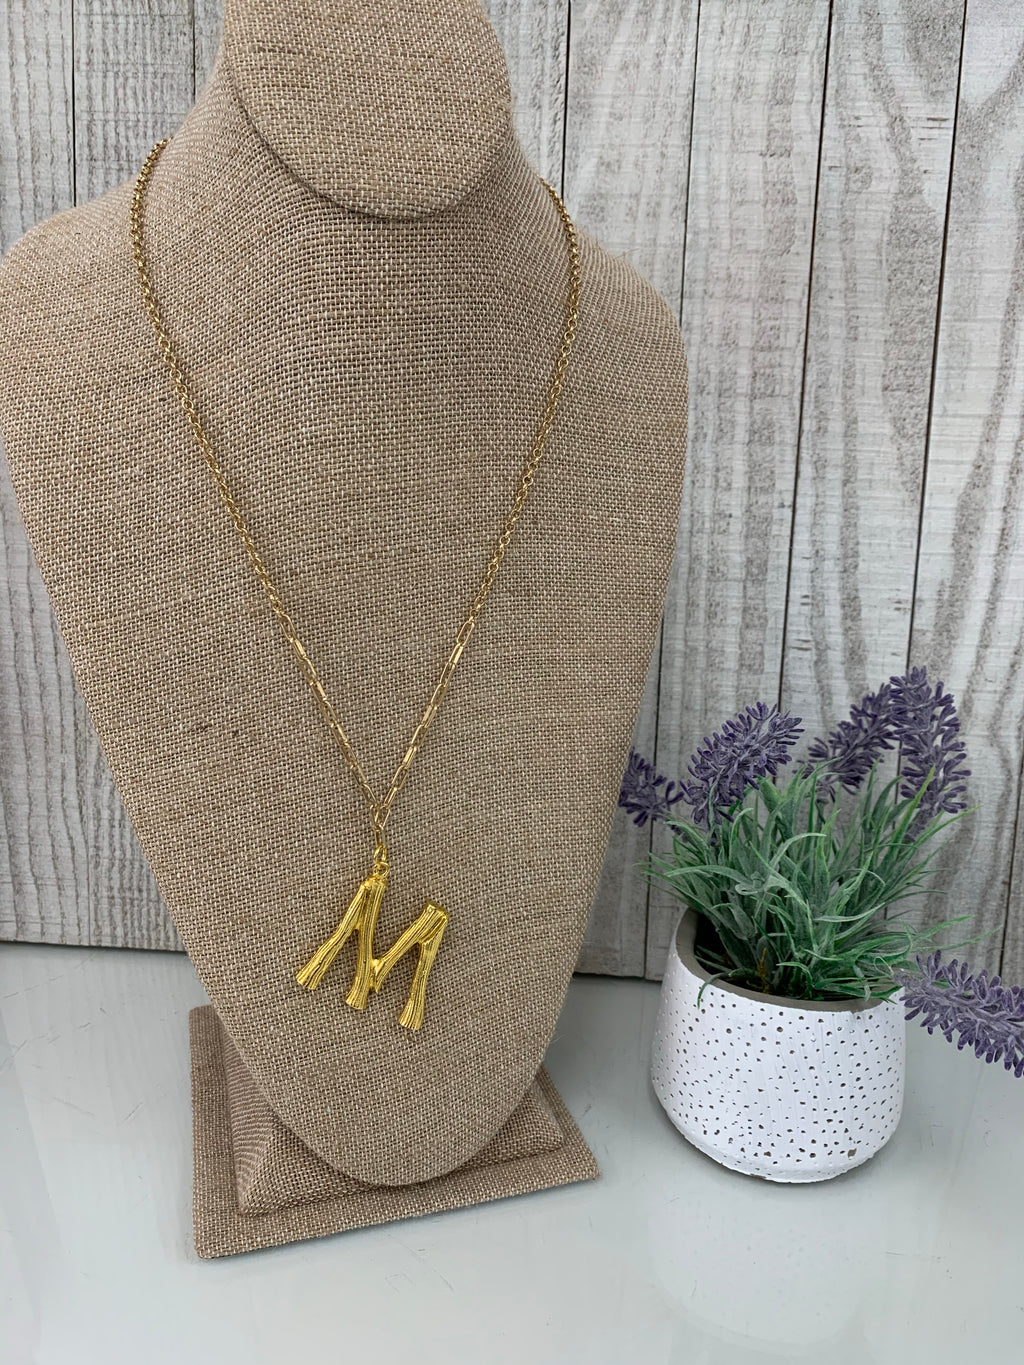 M' Branch Initial Pendant Necklace - Sissy Boutique